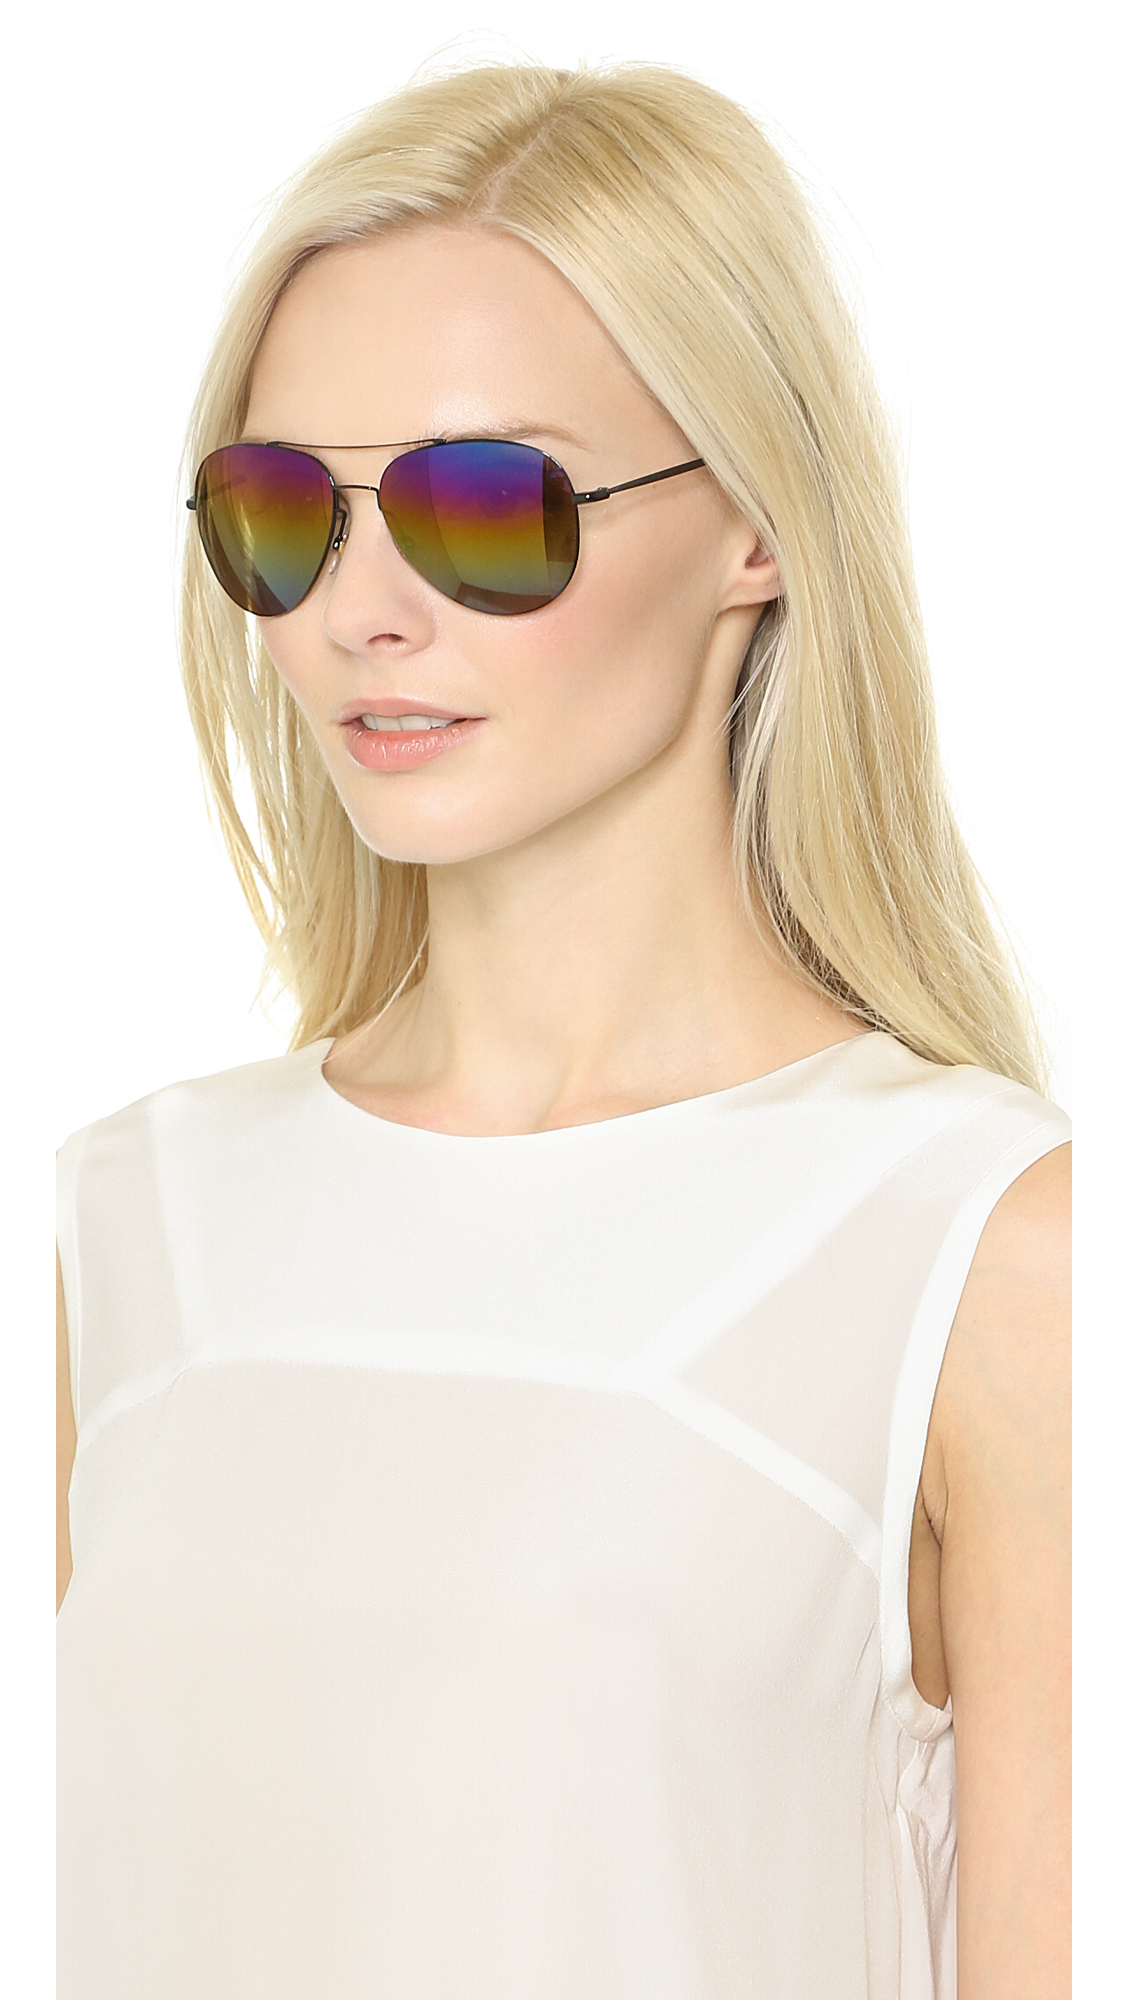 5d1776dcf61dc Gucci Rainbow Mirrored Aviator Sunglasses